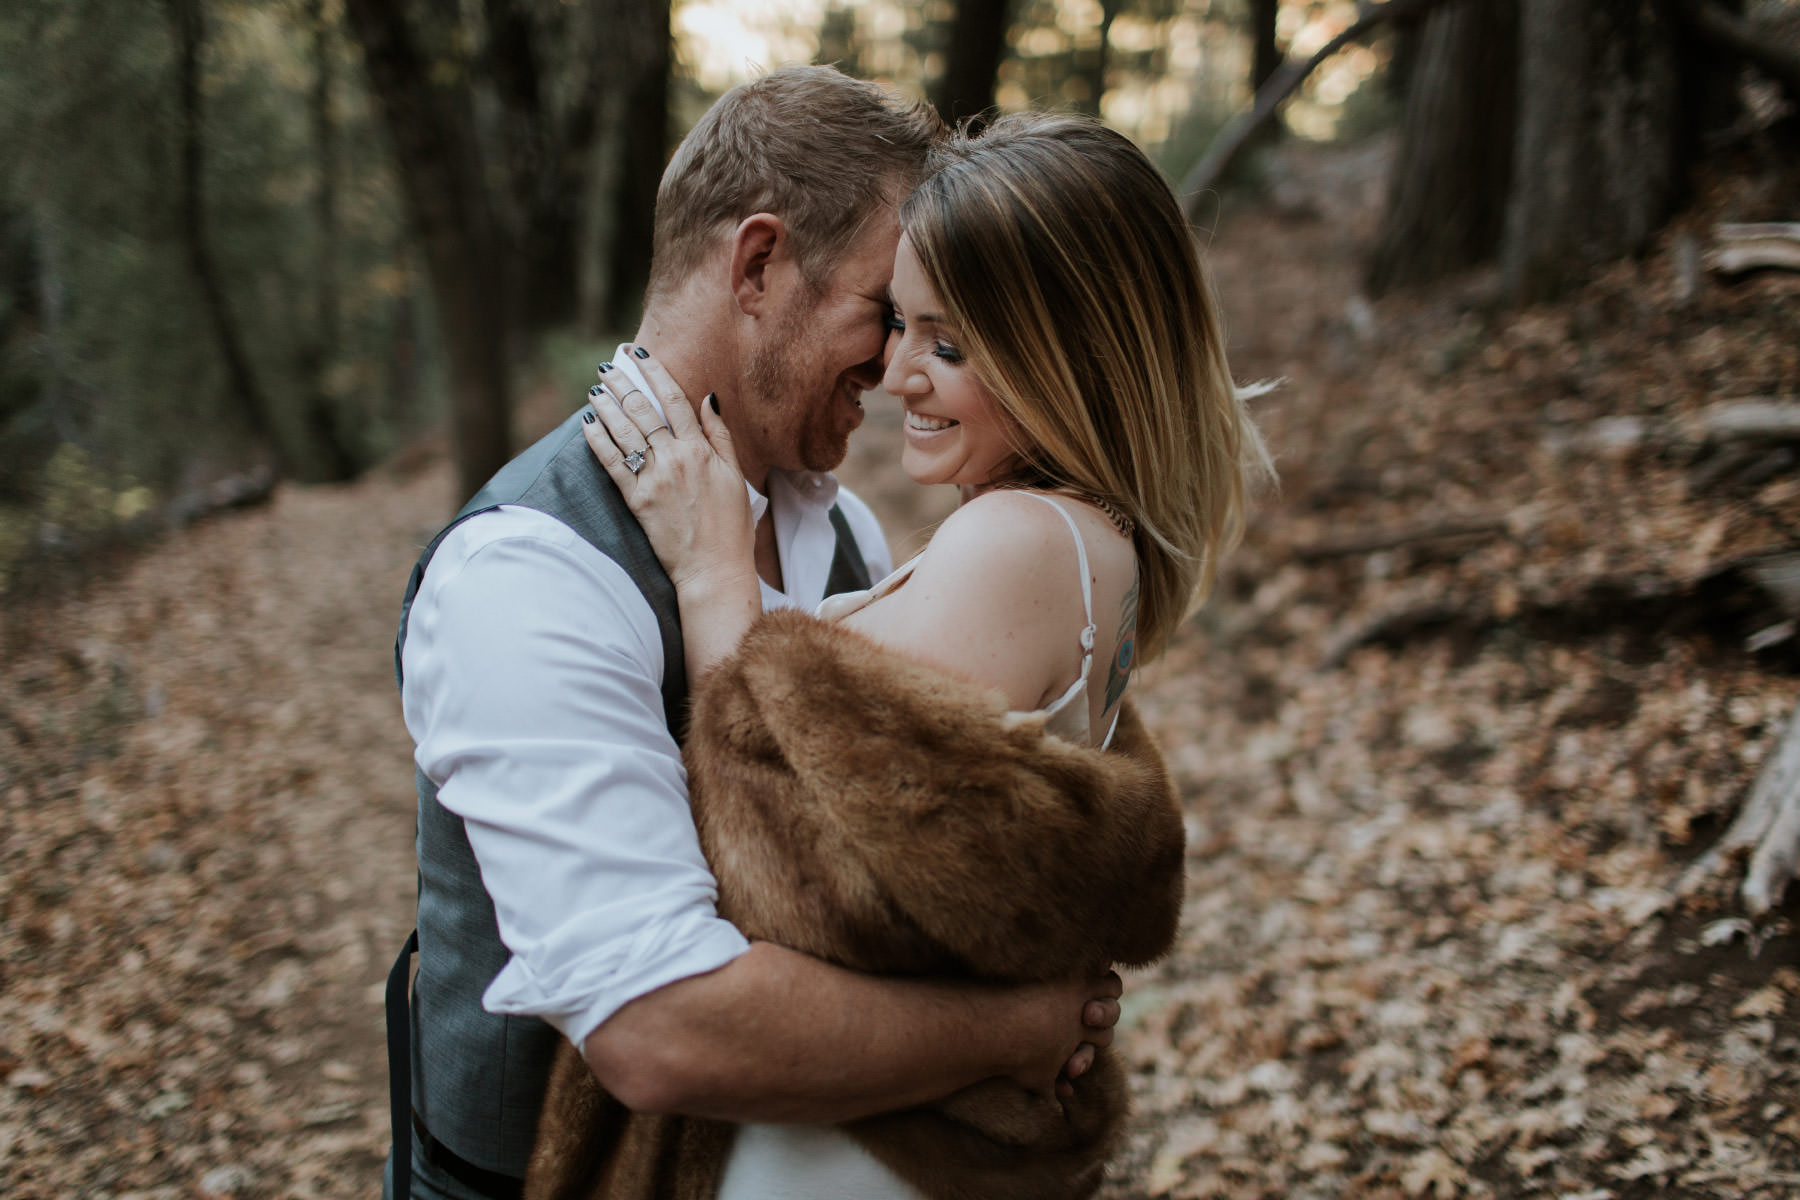 Couple laughing in forest at Palomar Mountain wearing vintage fur stole